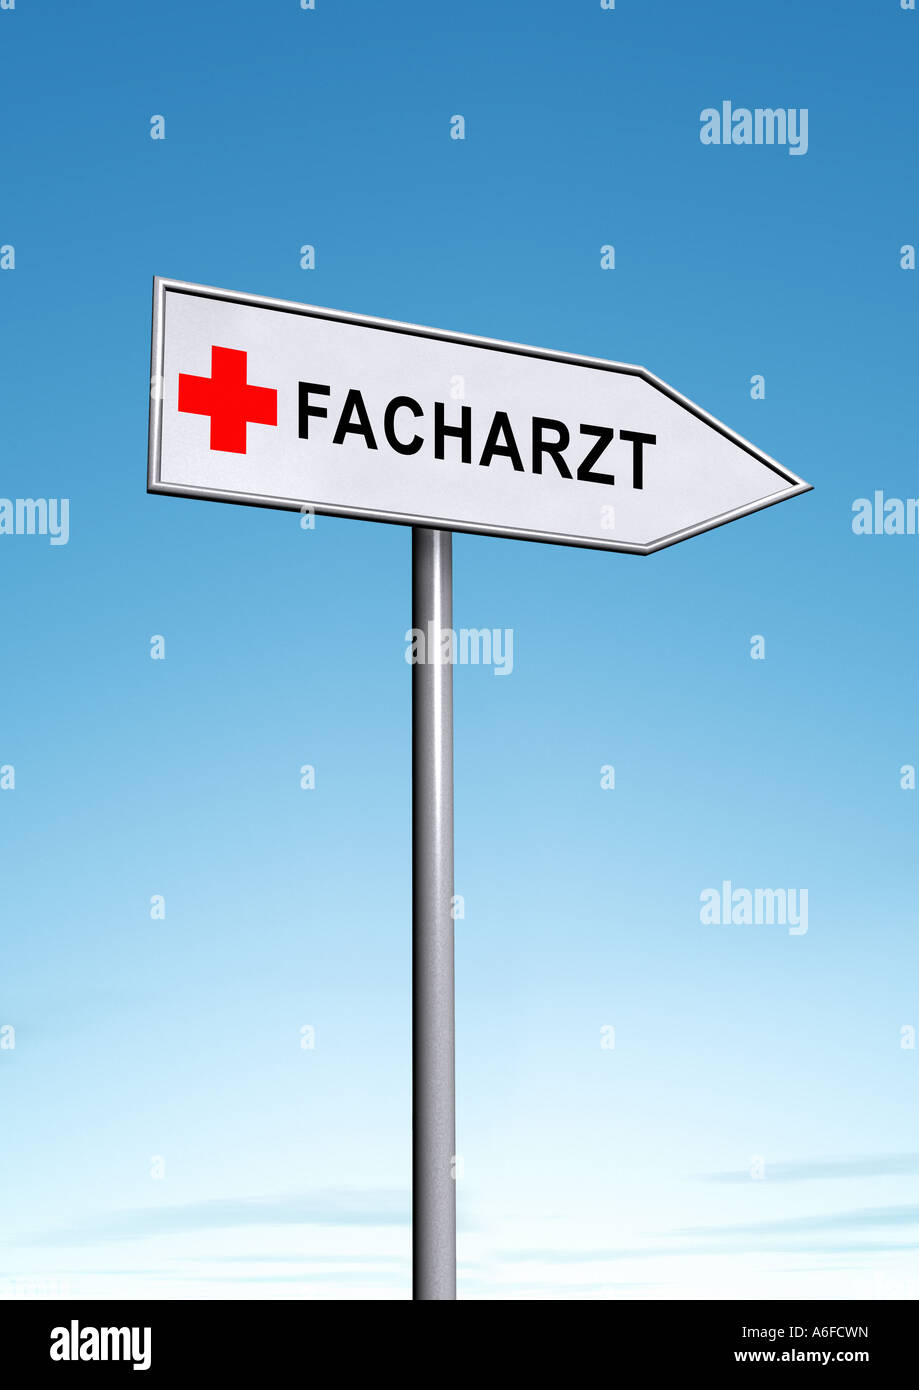 medical specialist Facharzt Stock Photo